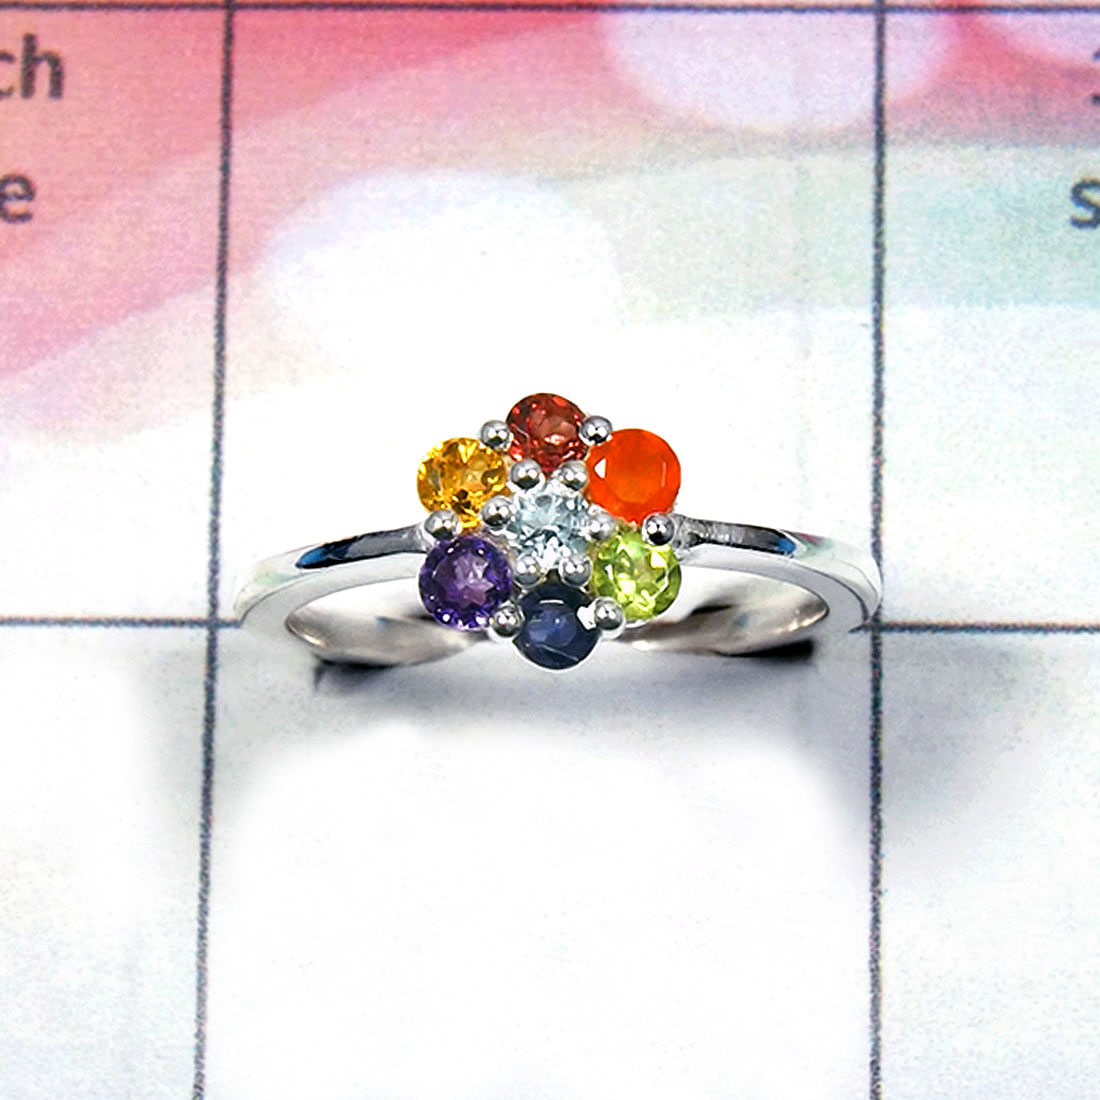 Chakra Cut Ring - BCJ010-Solid 925 Sterling Silver Ready To Ship Seven Stone Healing Chakra Ring